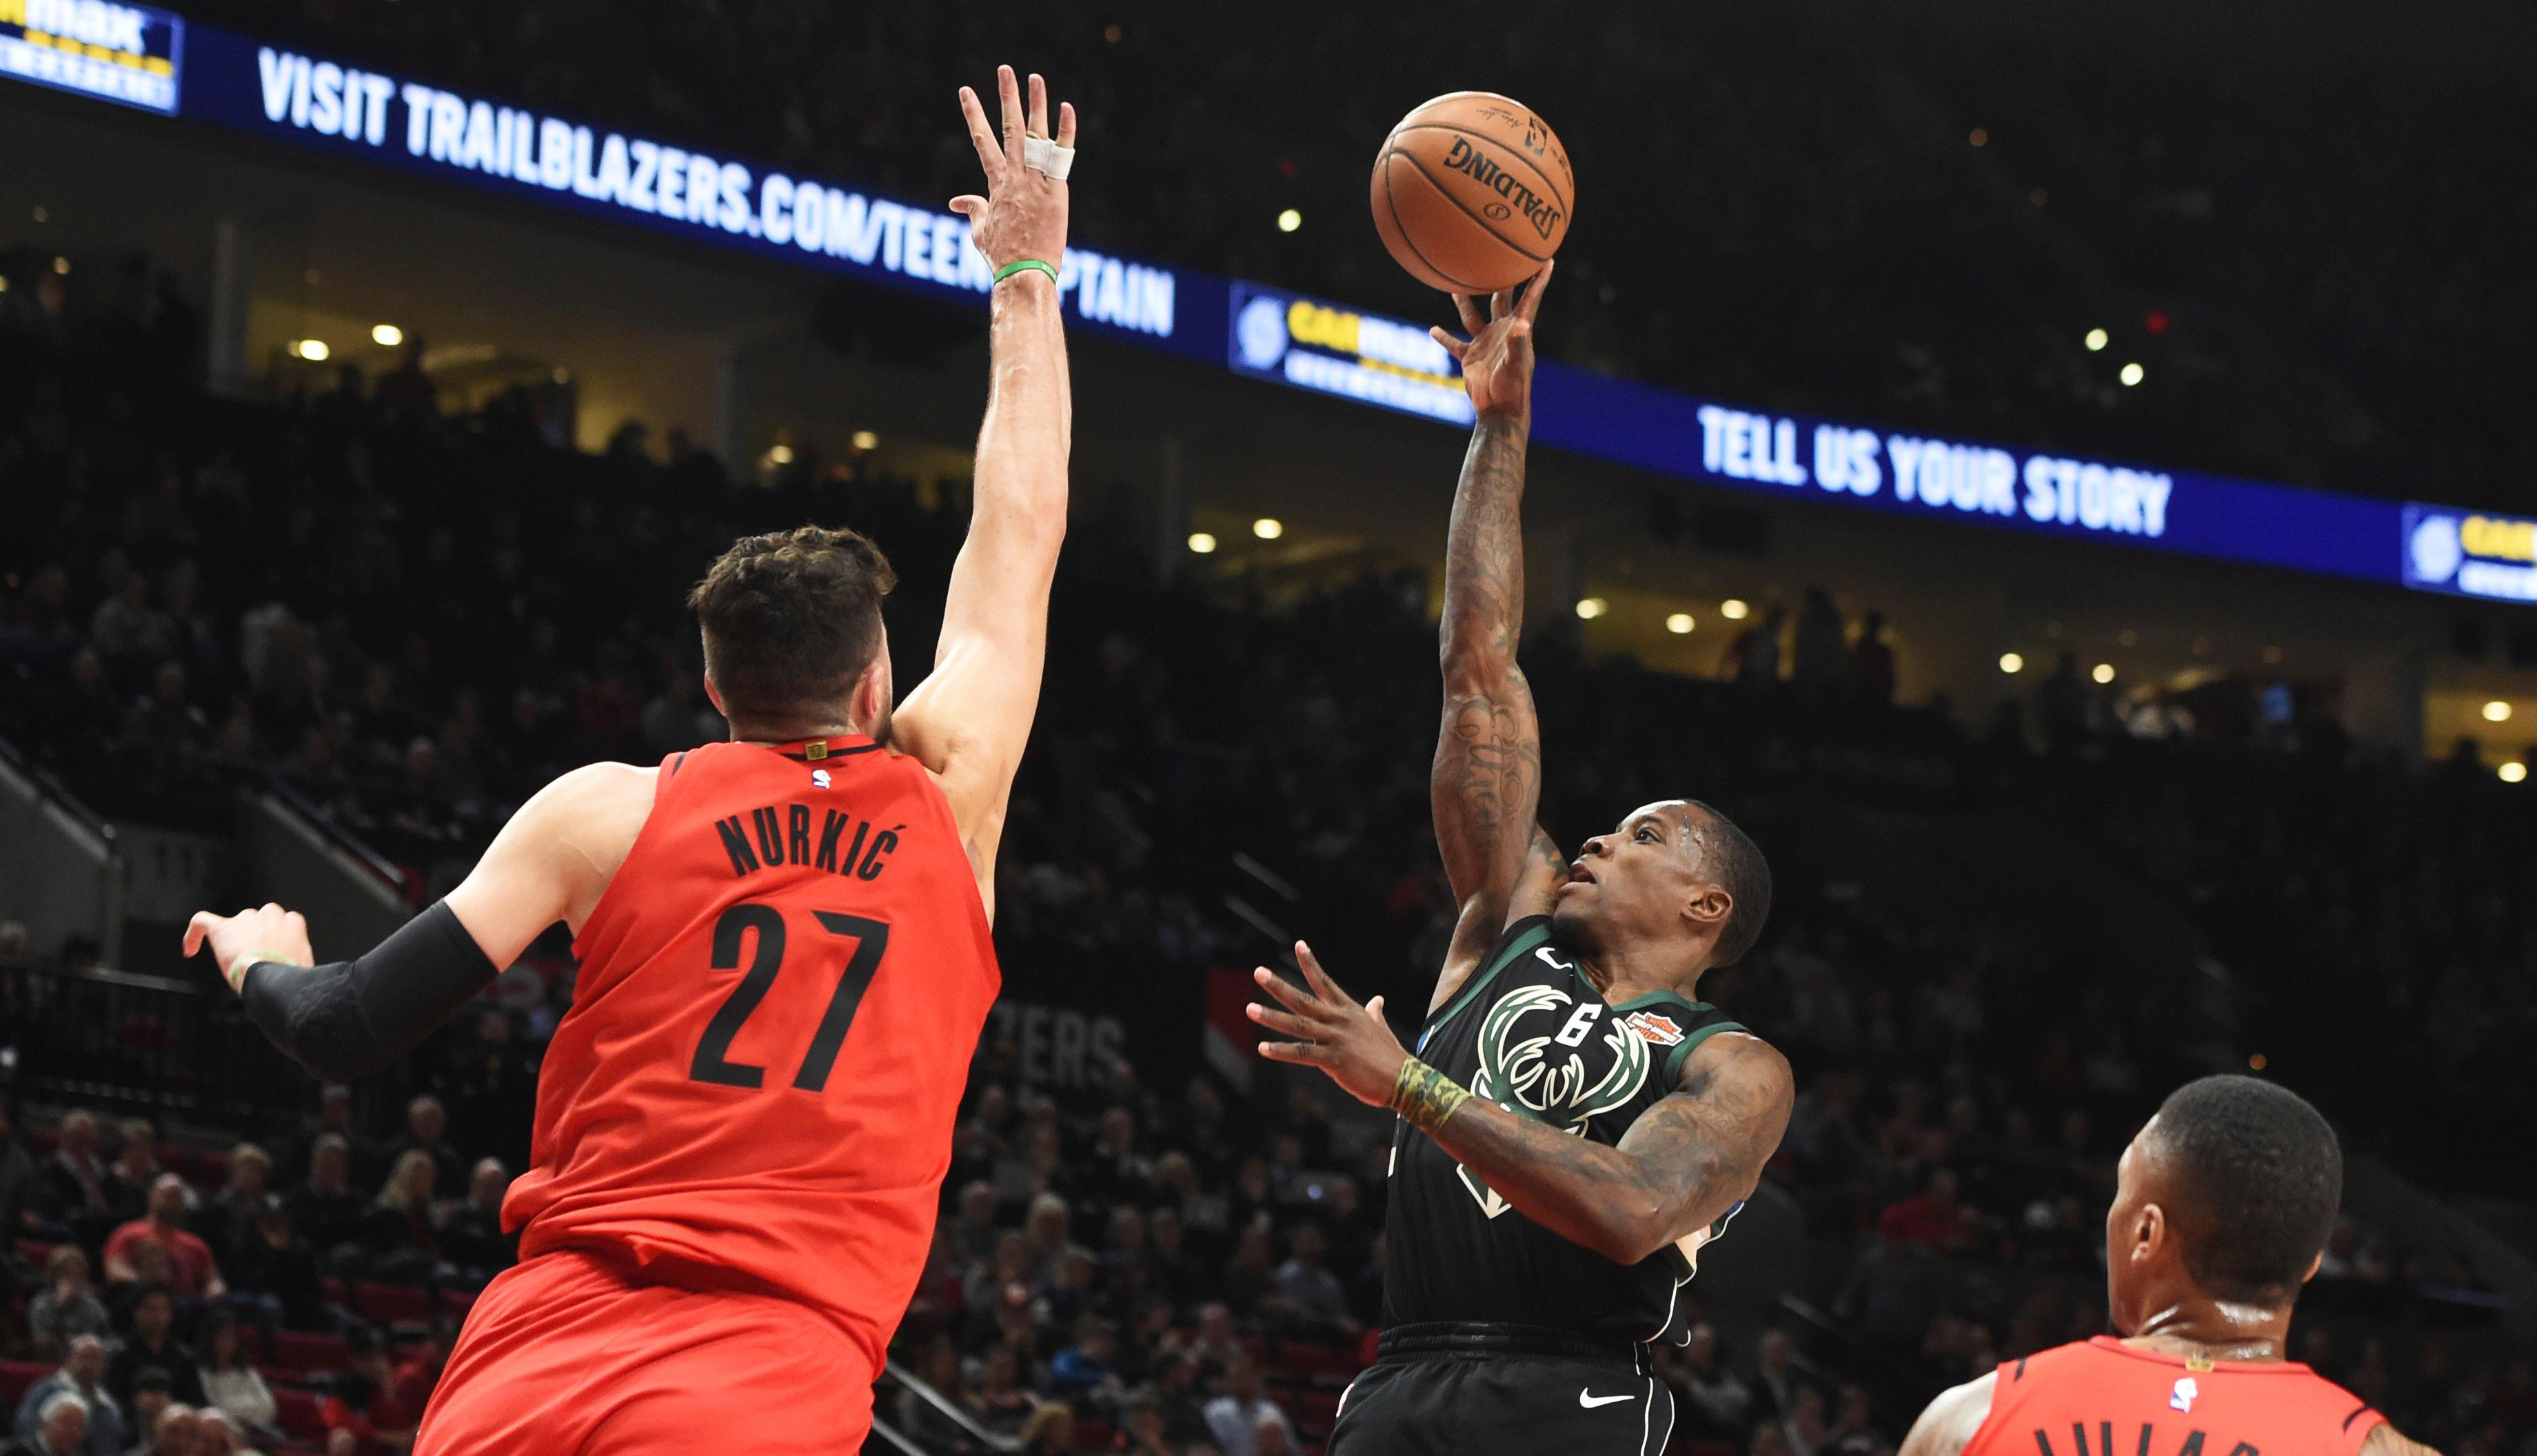 Milwaukee Bucks guard Eric Bledsoe shoots over Portland Trail Blazers center Jusuf Nurkic during the first quarter of an NBA basketball game in Portland, Ore., Thursday, Nov. 30, 2017. (AP Photo/Steve Dykes)